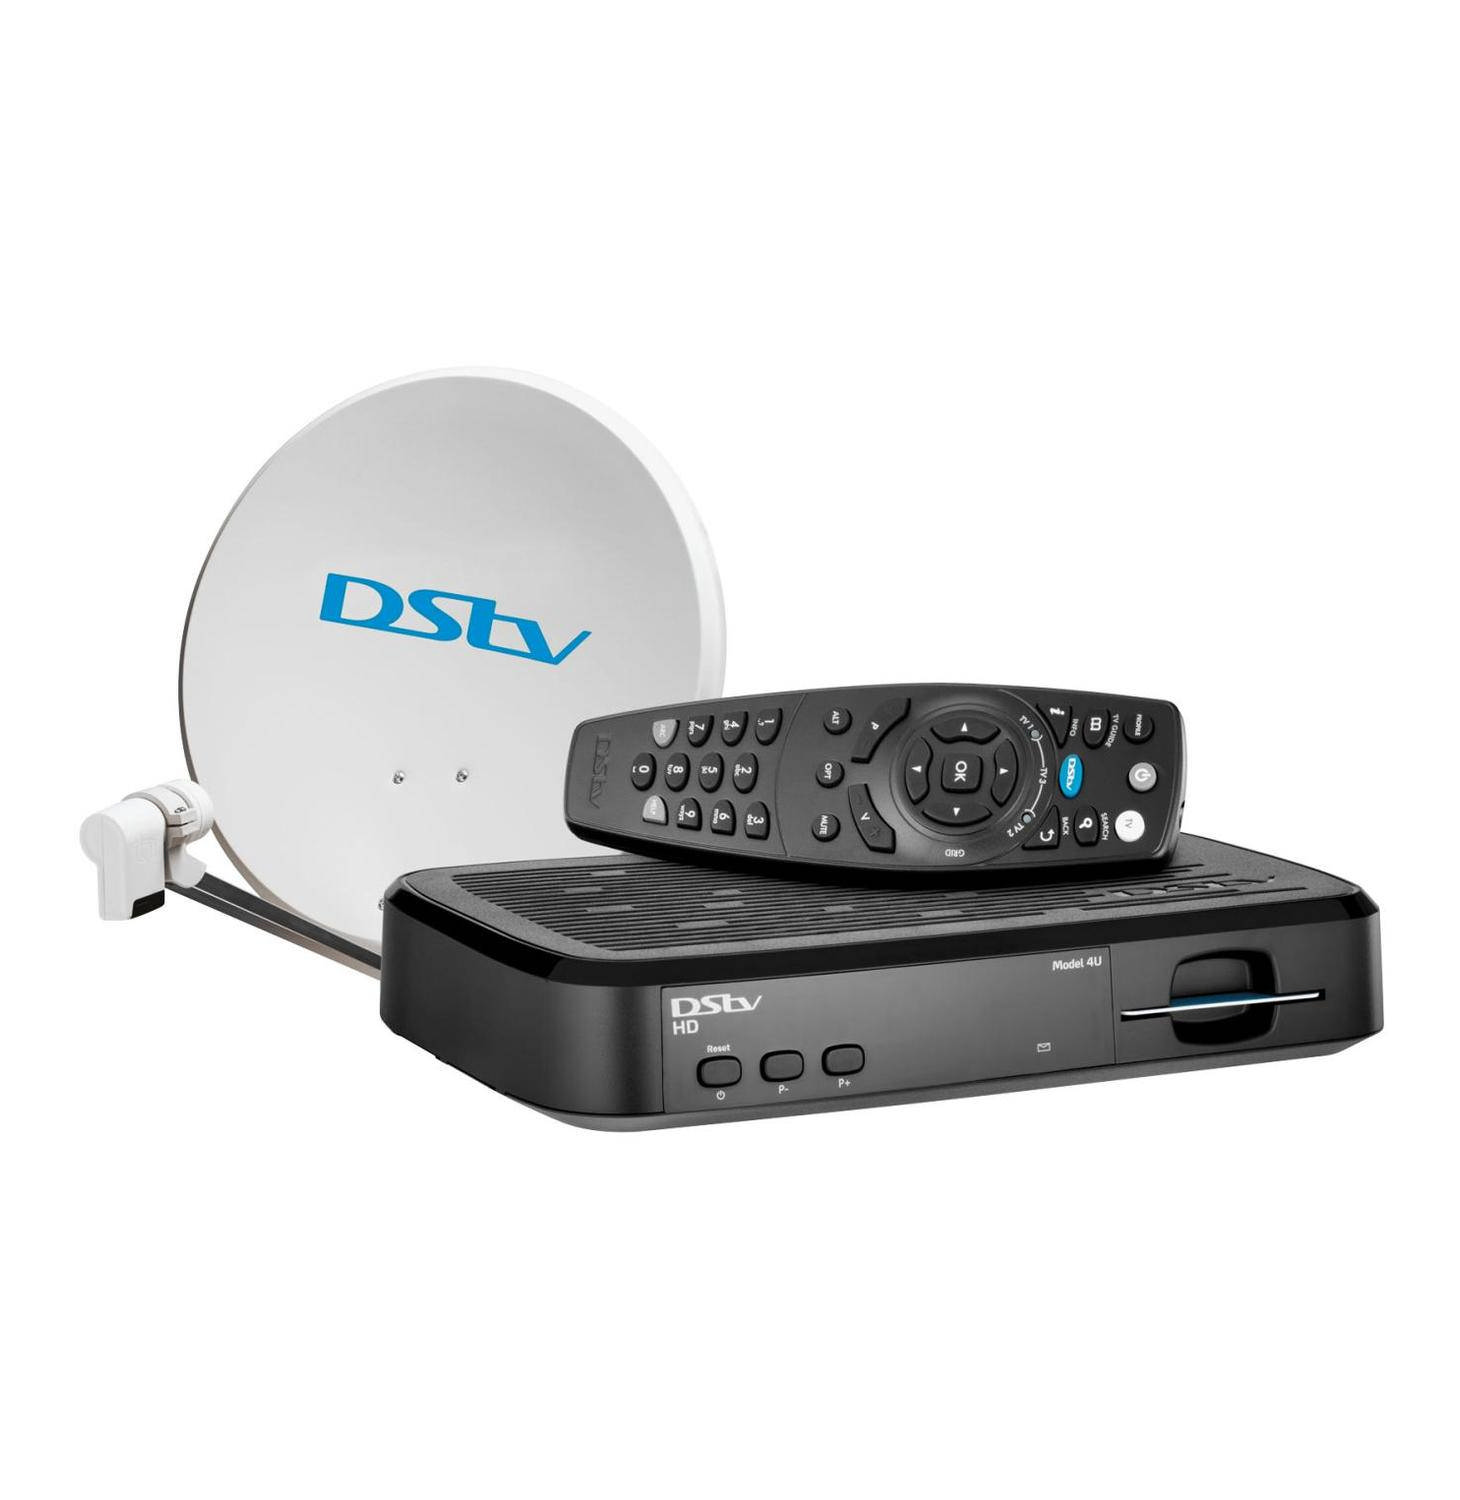 Dstv services by professional technicians